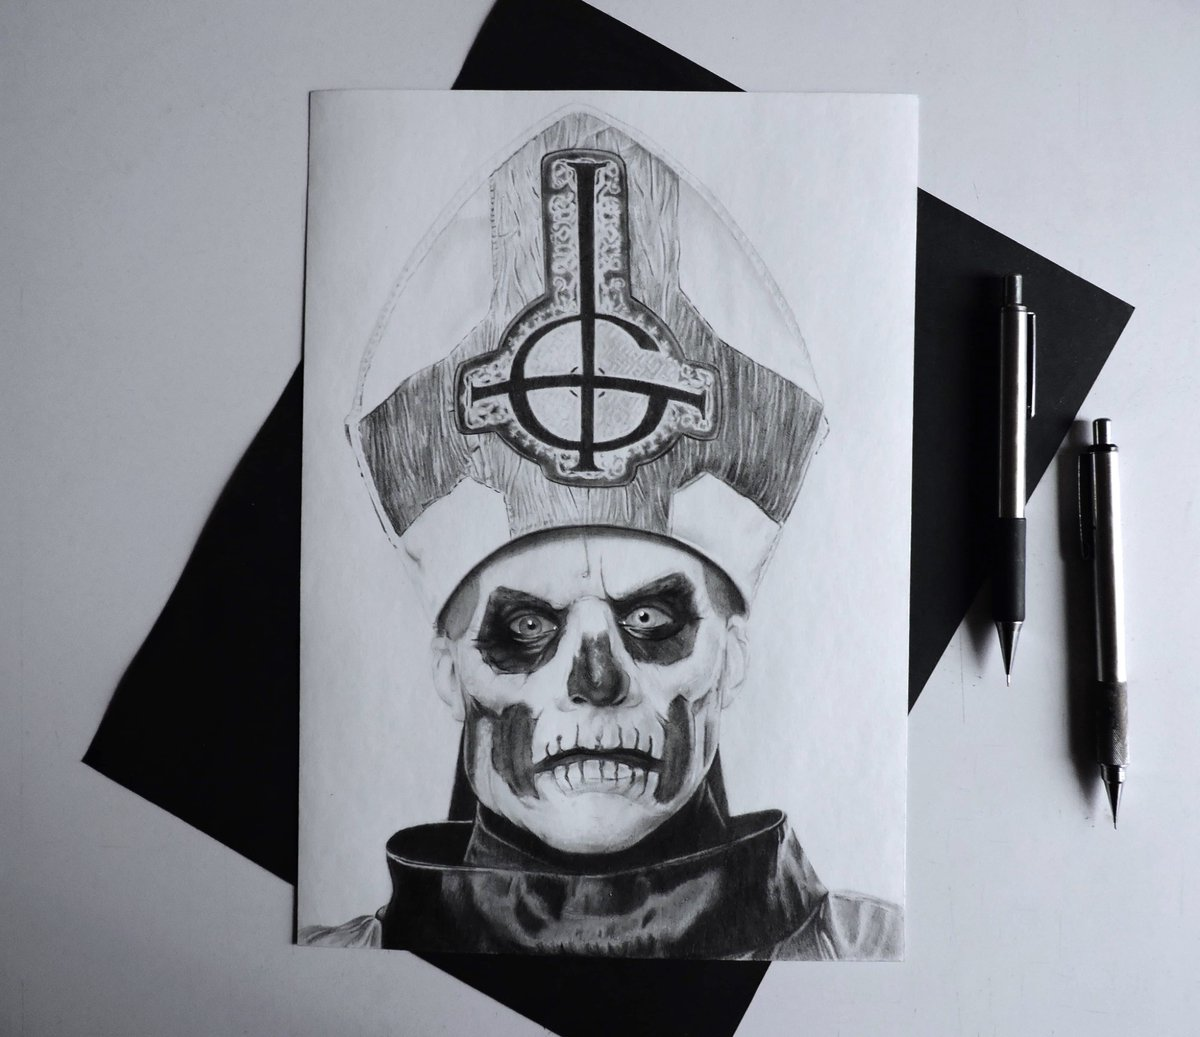 . - [BIRTHDAY SALE - INBOX FOR DETAILS]. - Papa Emeritus ii I want to thank each and everyone of you for all your constant support  . - #art #artist #draw #drawing #ghost #papaemeritusii #tobiasforge #birthday #inspiration #gratitude #thankful #realismpic.twitter.com/QDLUA6lDTe